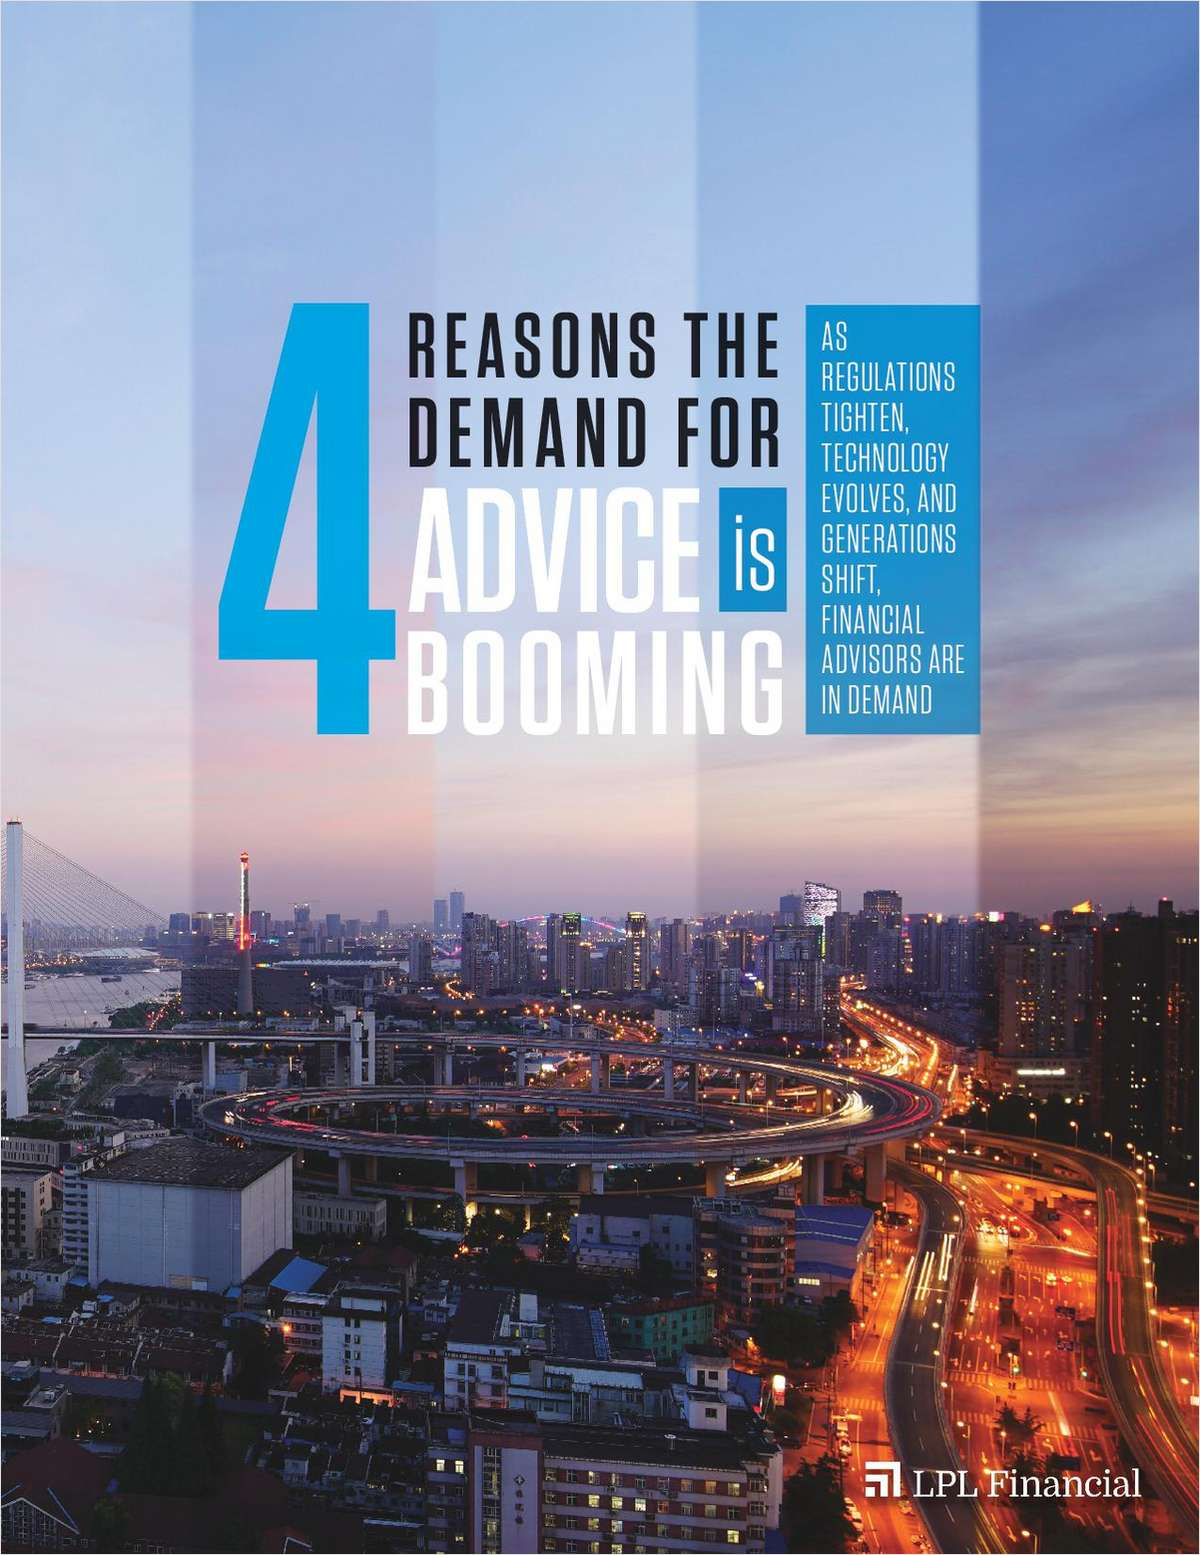 4 Reasons the Demand for Advice is Booming